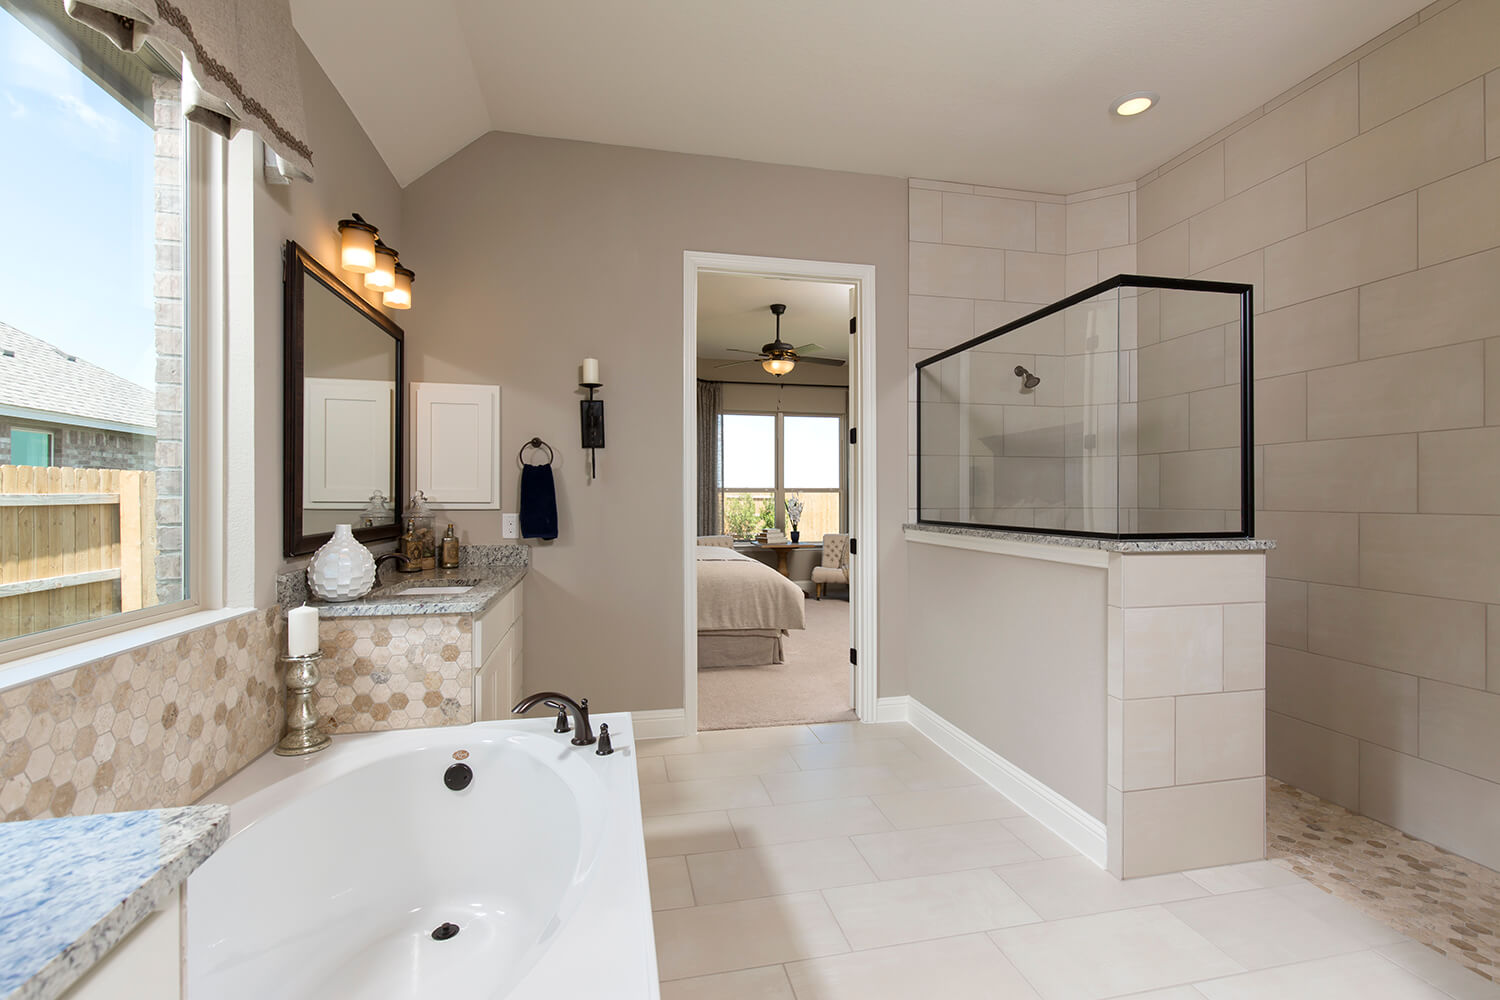 New Home Photo Gallery Wilshire Homes